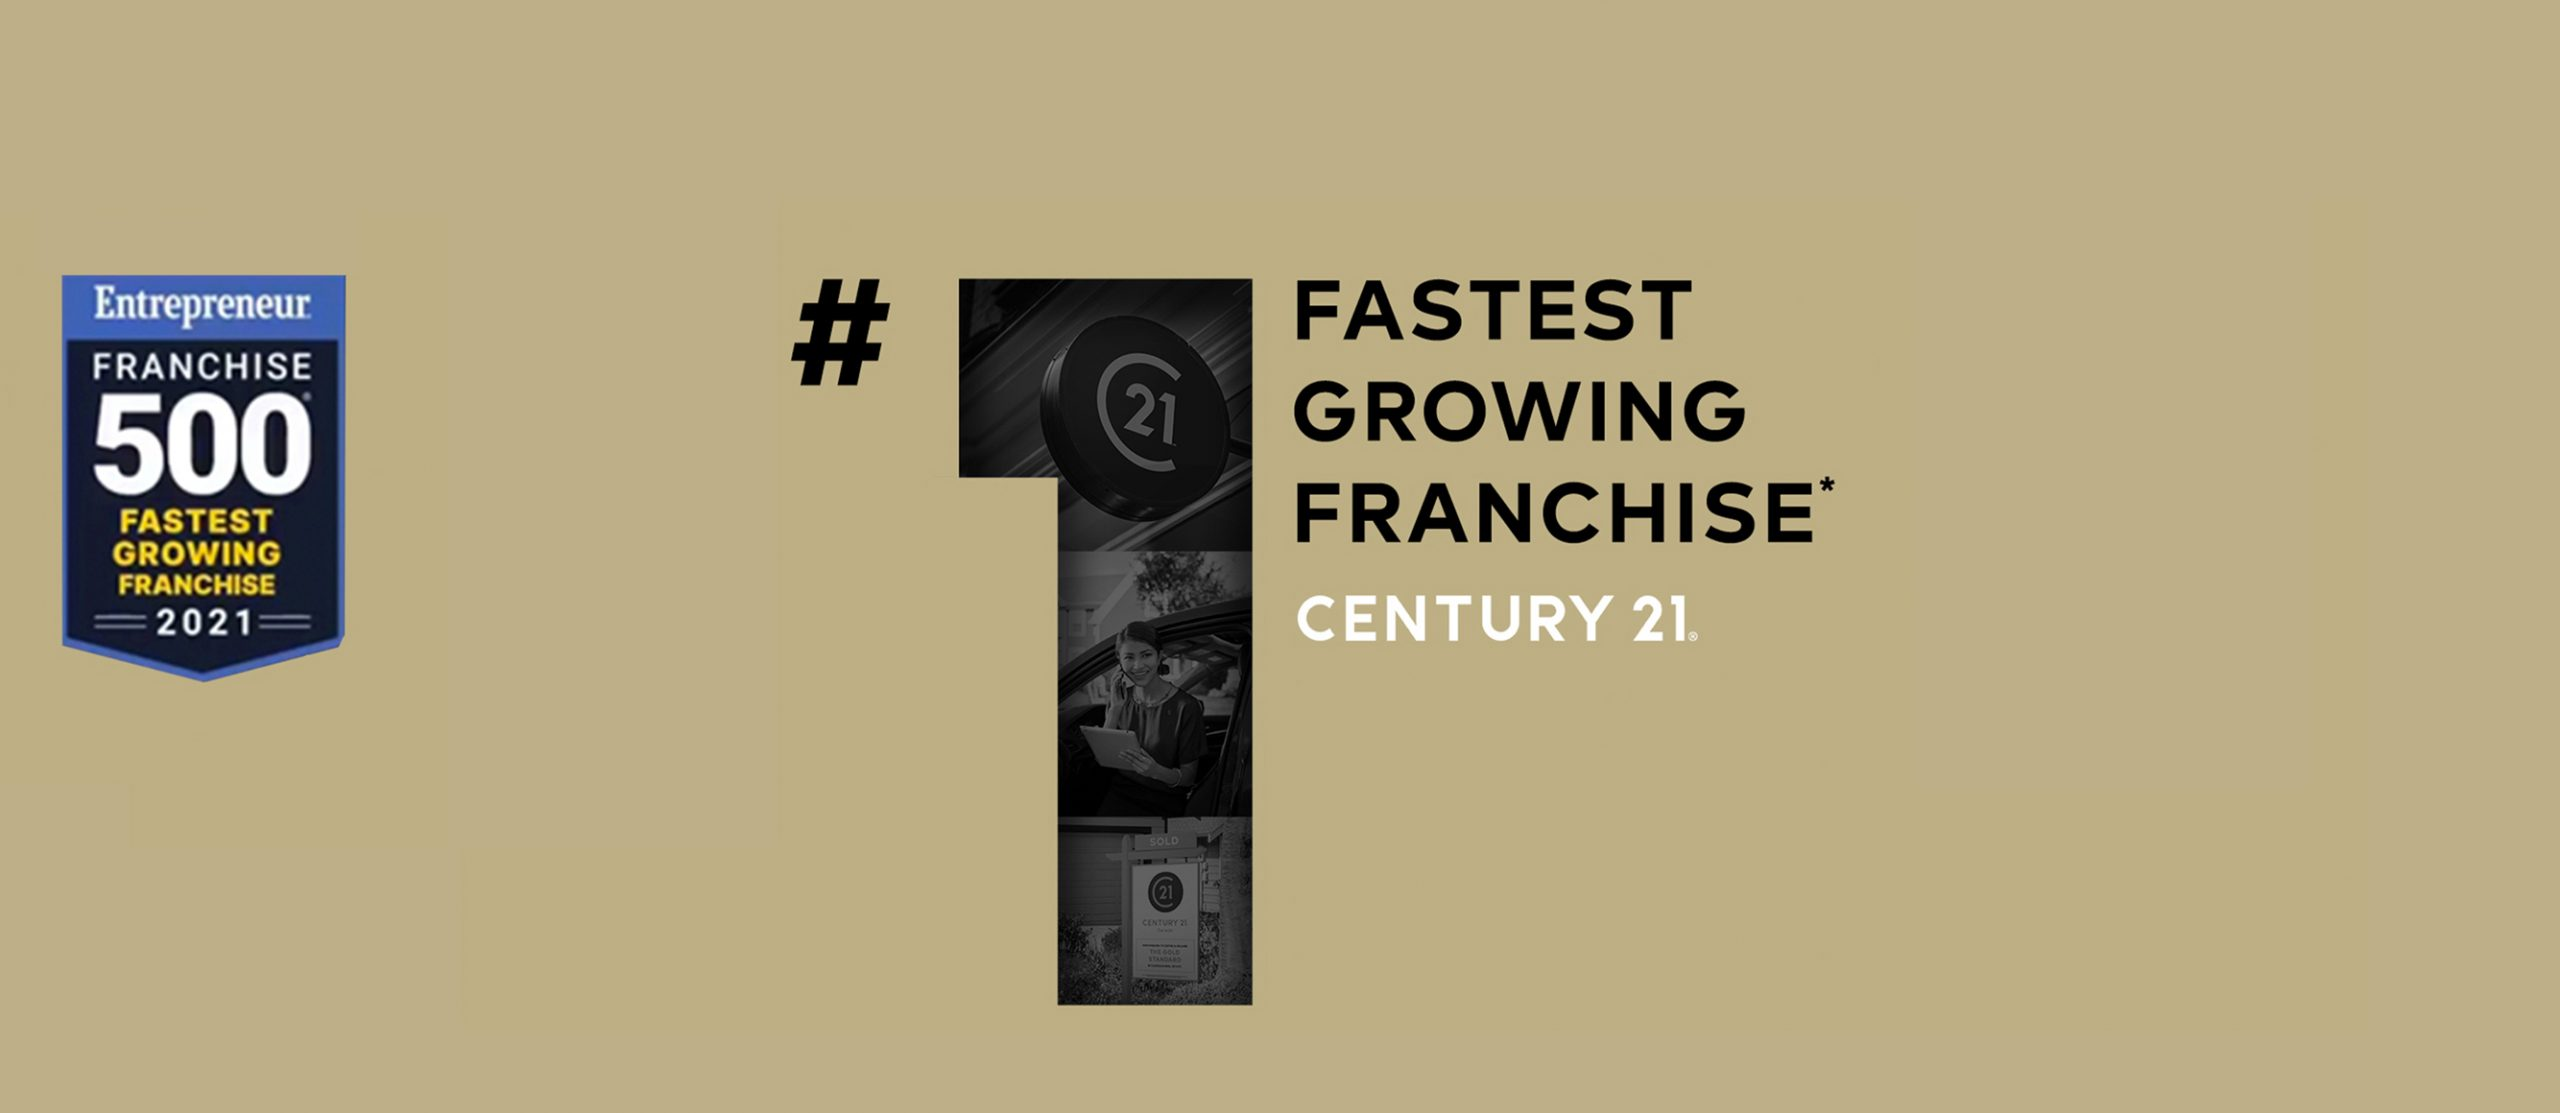 C21 is the #1 Fastest Growing Franchise